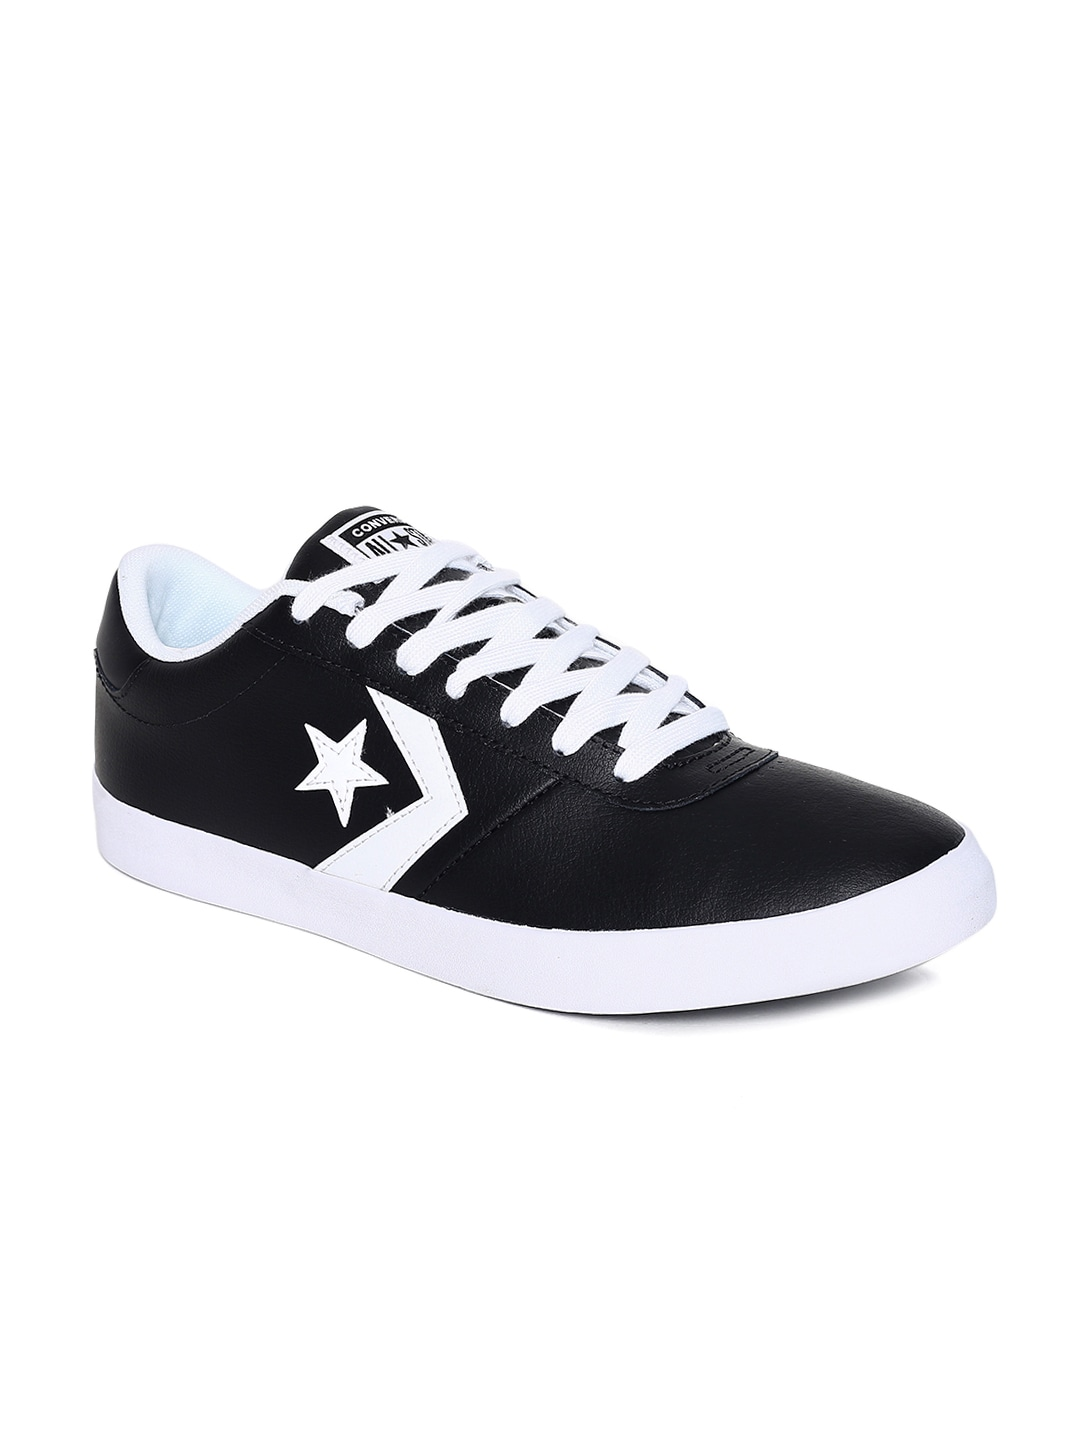 81354e2edc87 Converse Shoes - Buy Converse Canvas Shoes   Sneakers Online